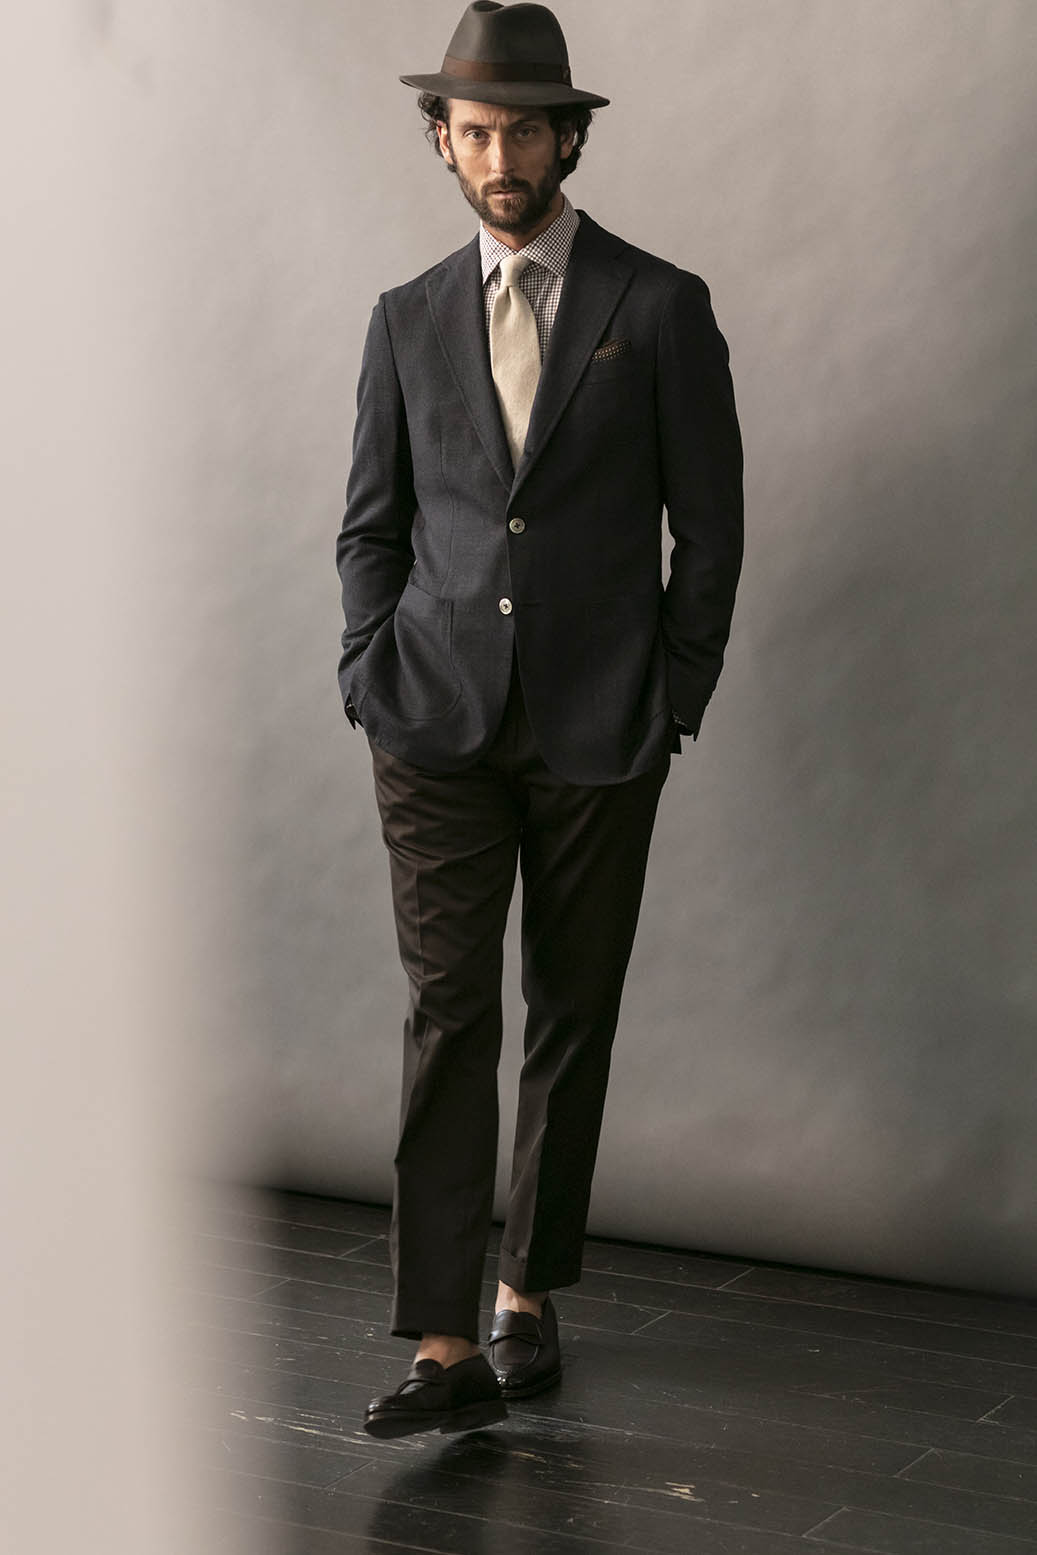 A variety of footwear pairs well with grey or brown suits